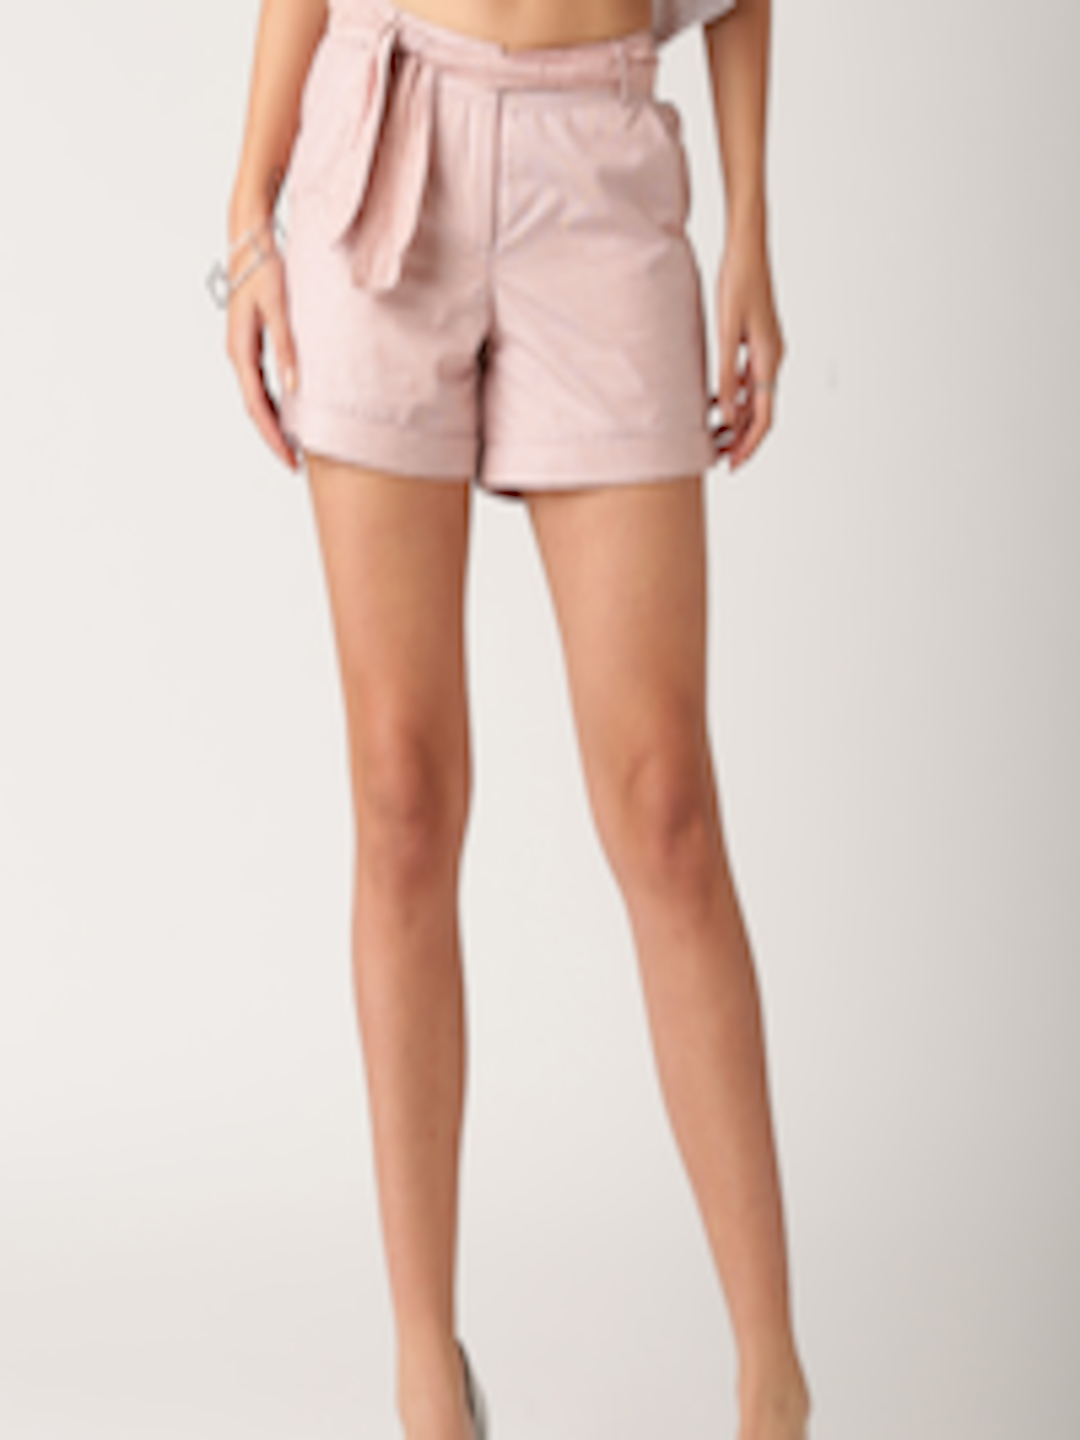 Buy All About You From Deepika Padukone Pink Shorts ...